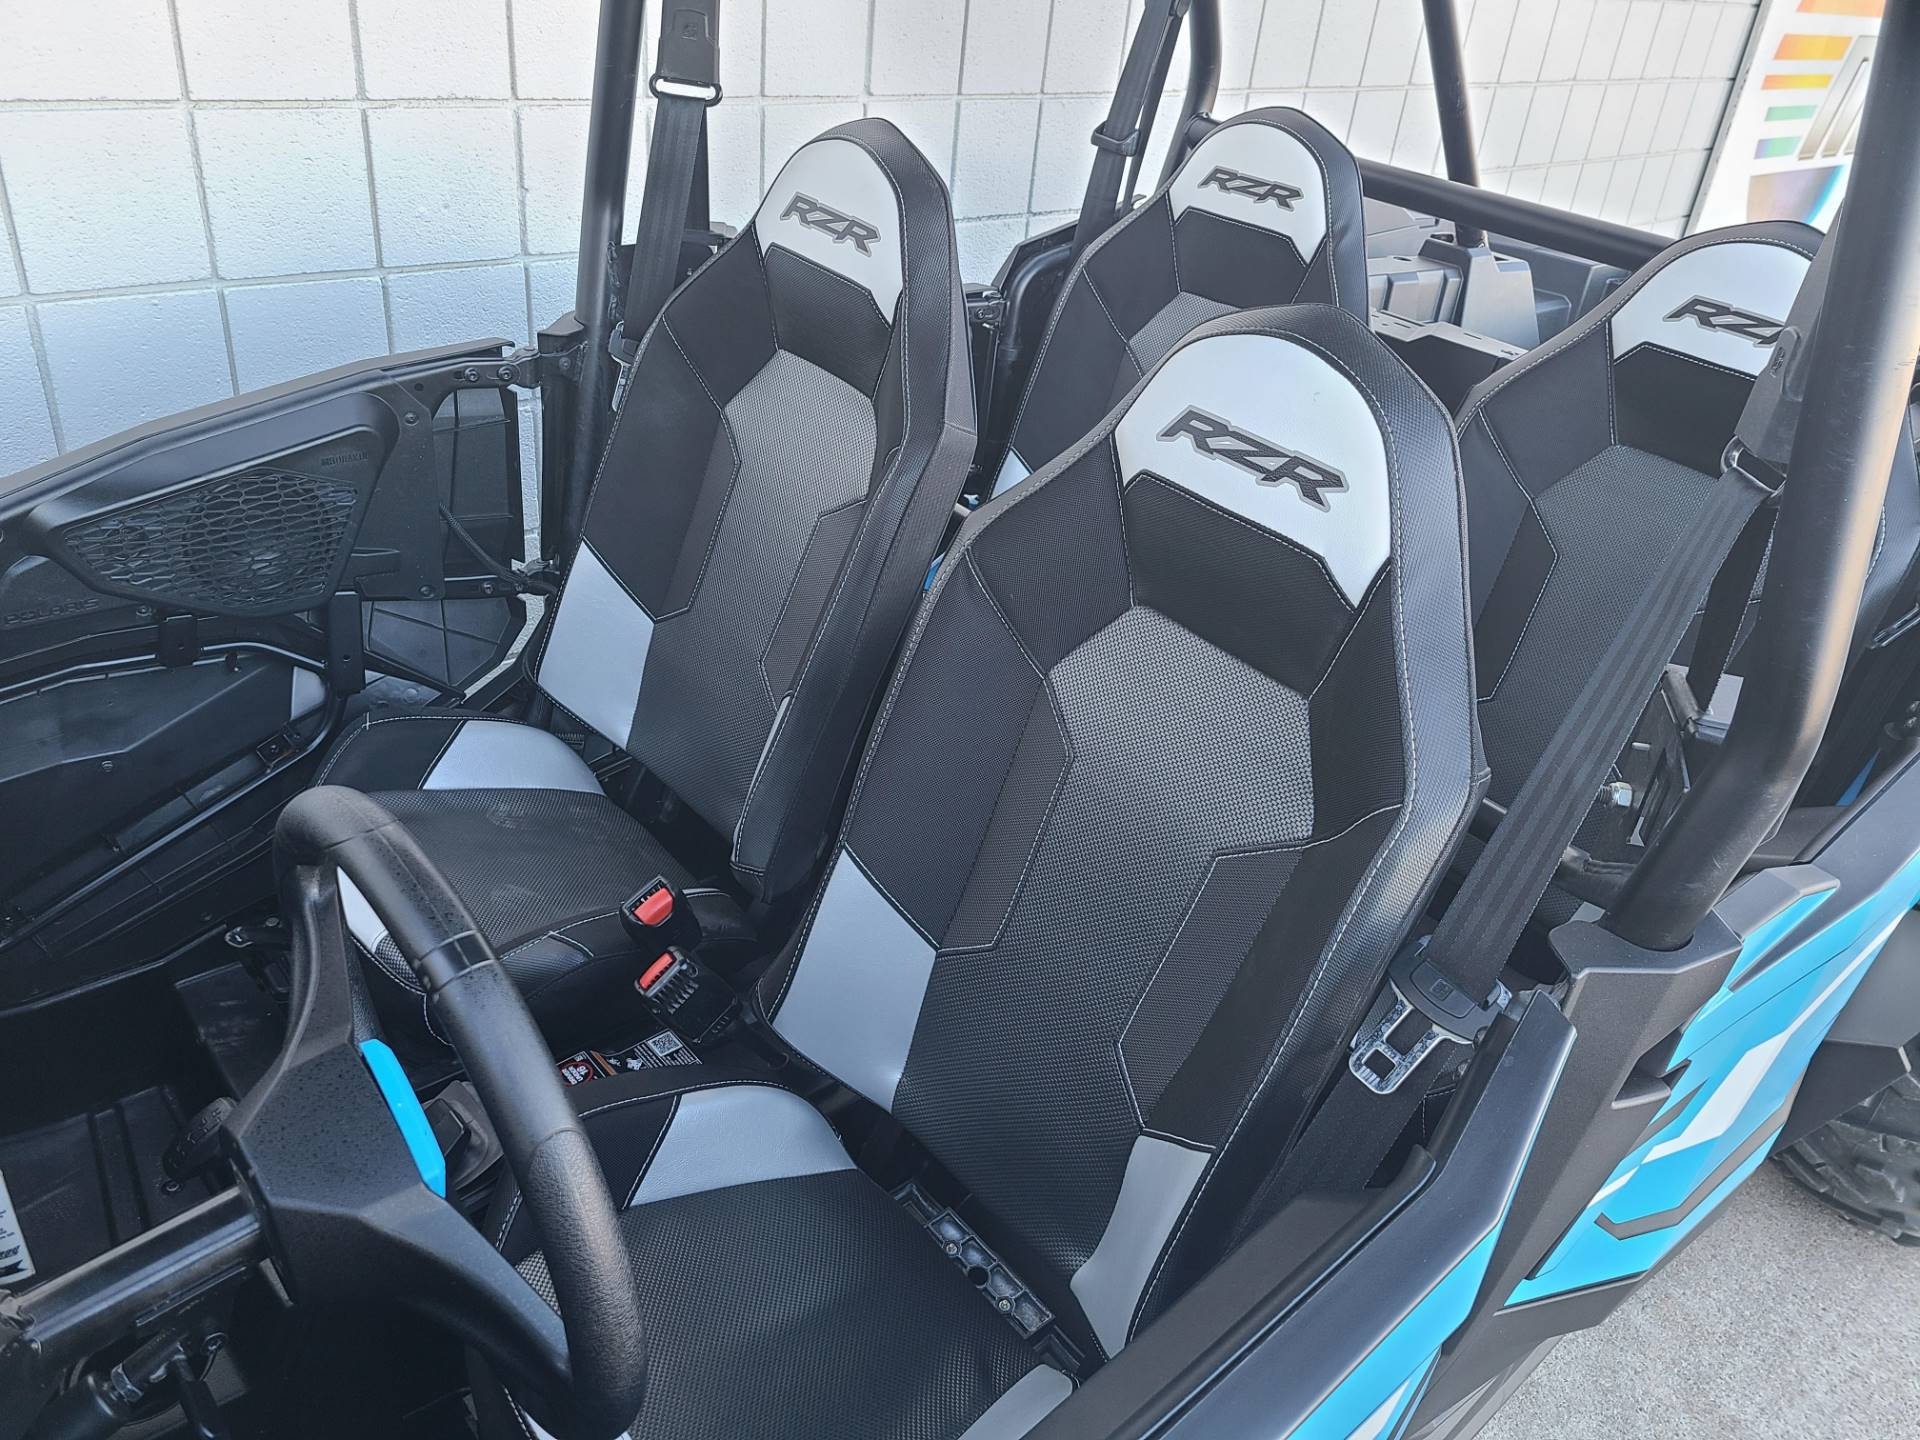 2019 Polaris RZR XP 4 1000 EPS Ride Command Edition in Rapid City, South Dakota - Photo 3